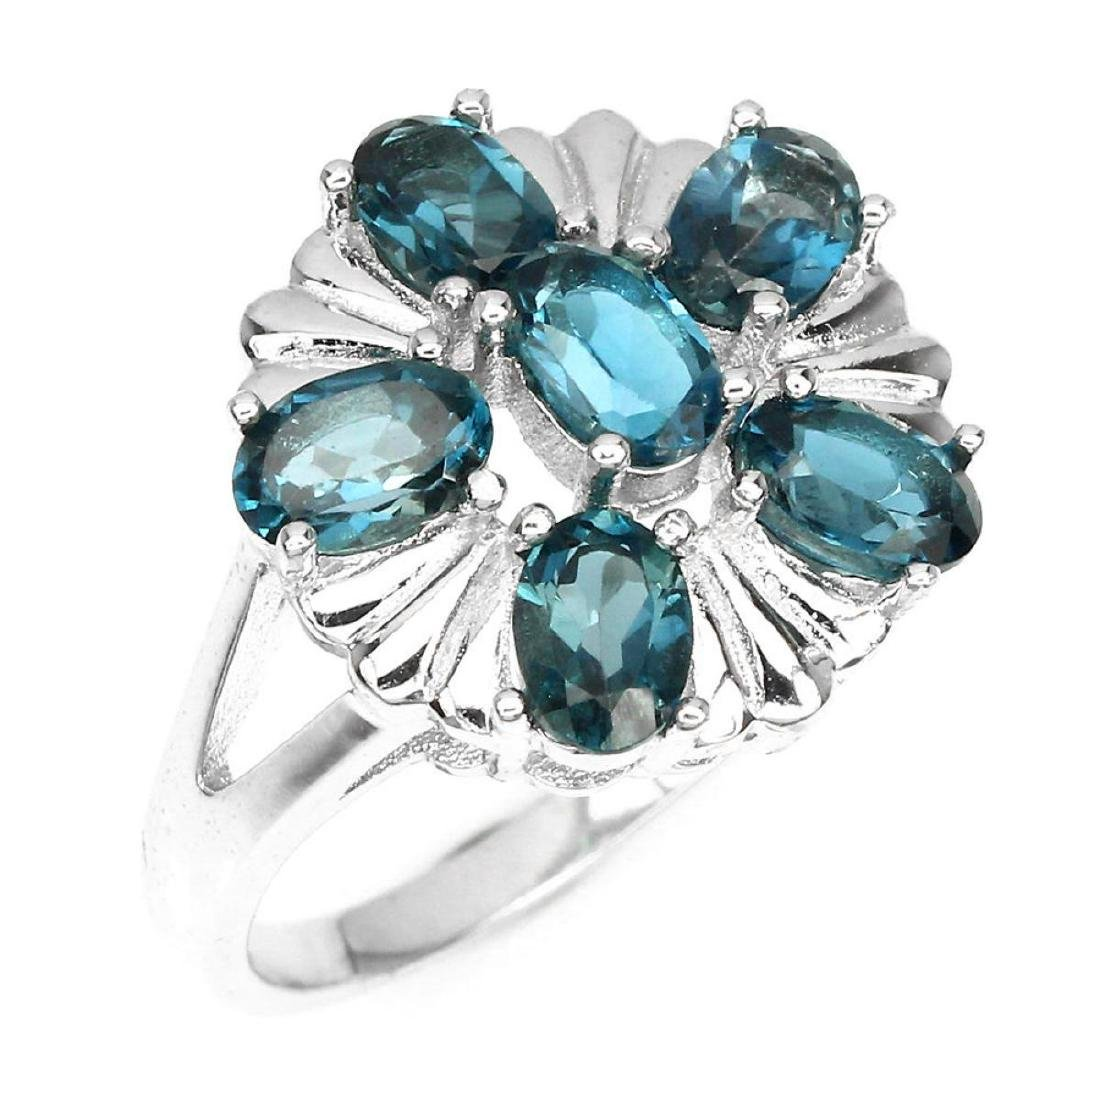 Natural London Blue Topaz Ring - 2